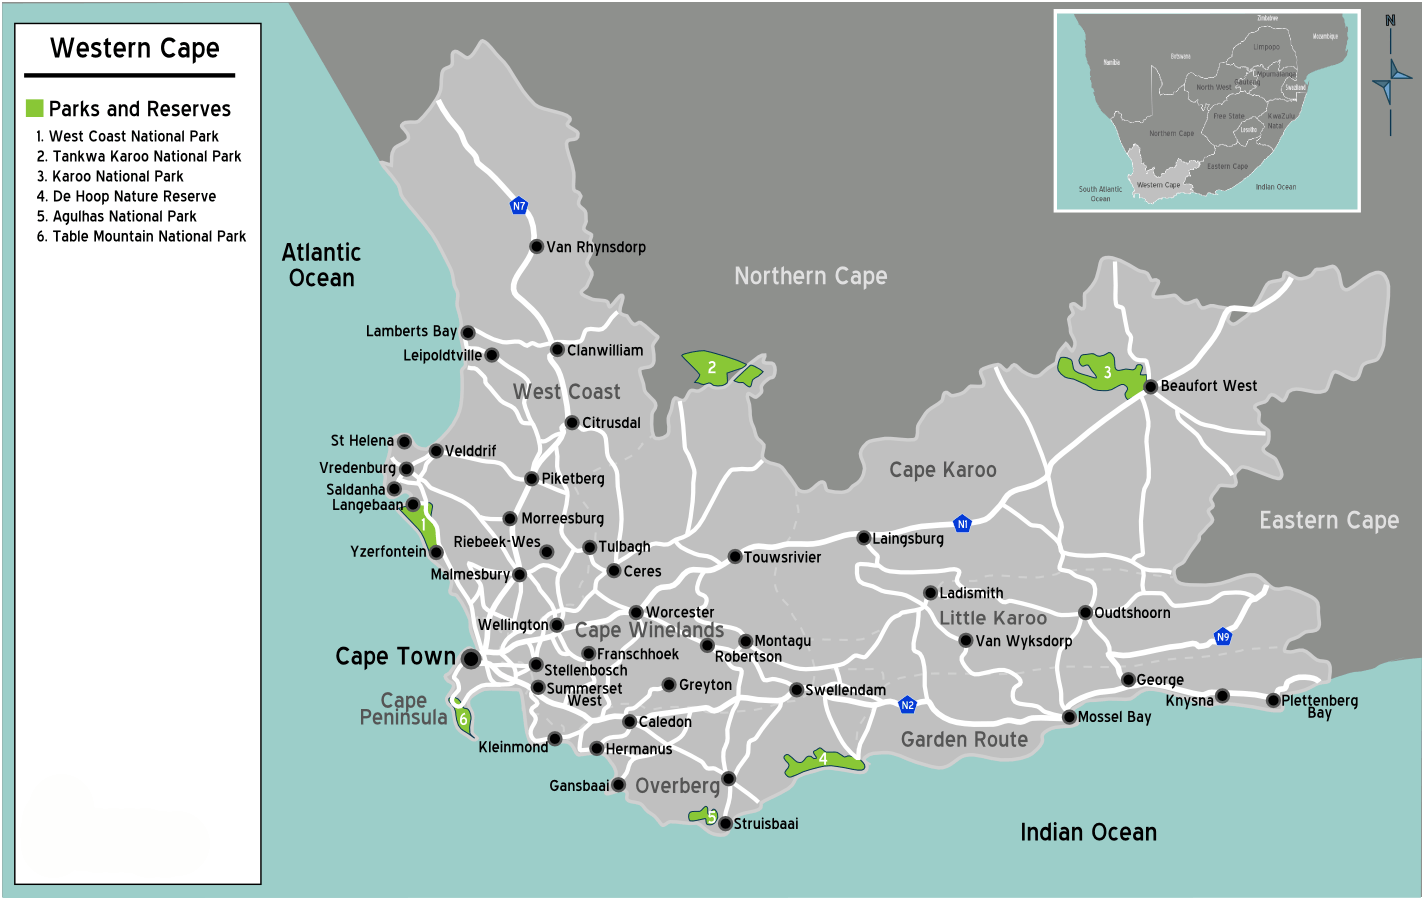 South Africa Western Cape Map • Mapsof.net